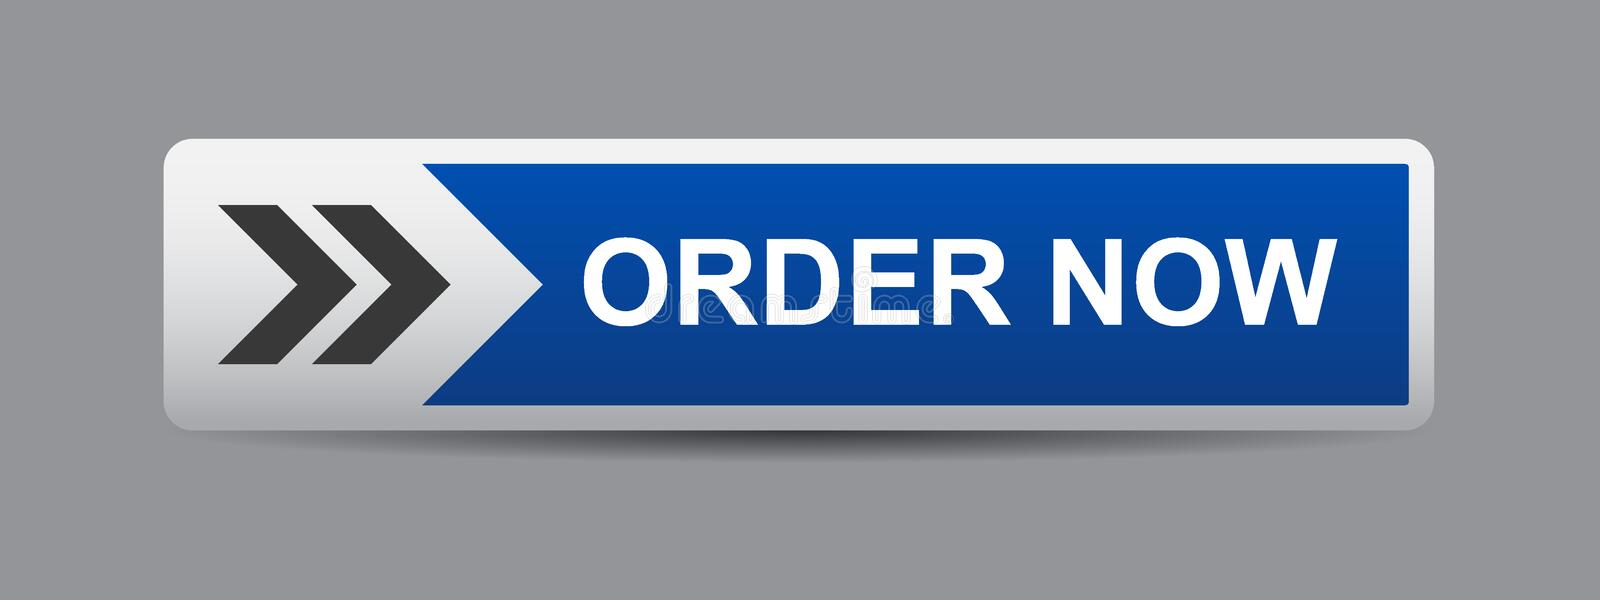 Order now button royalty free illustration